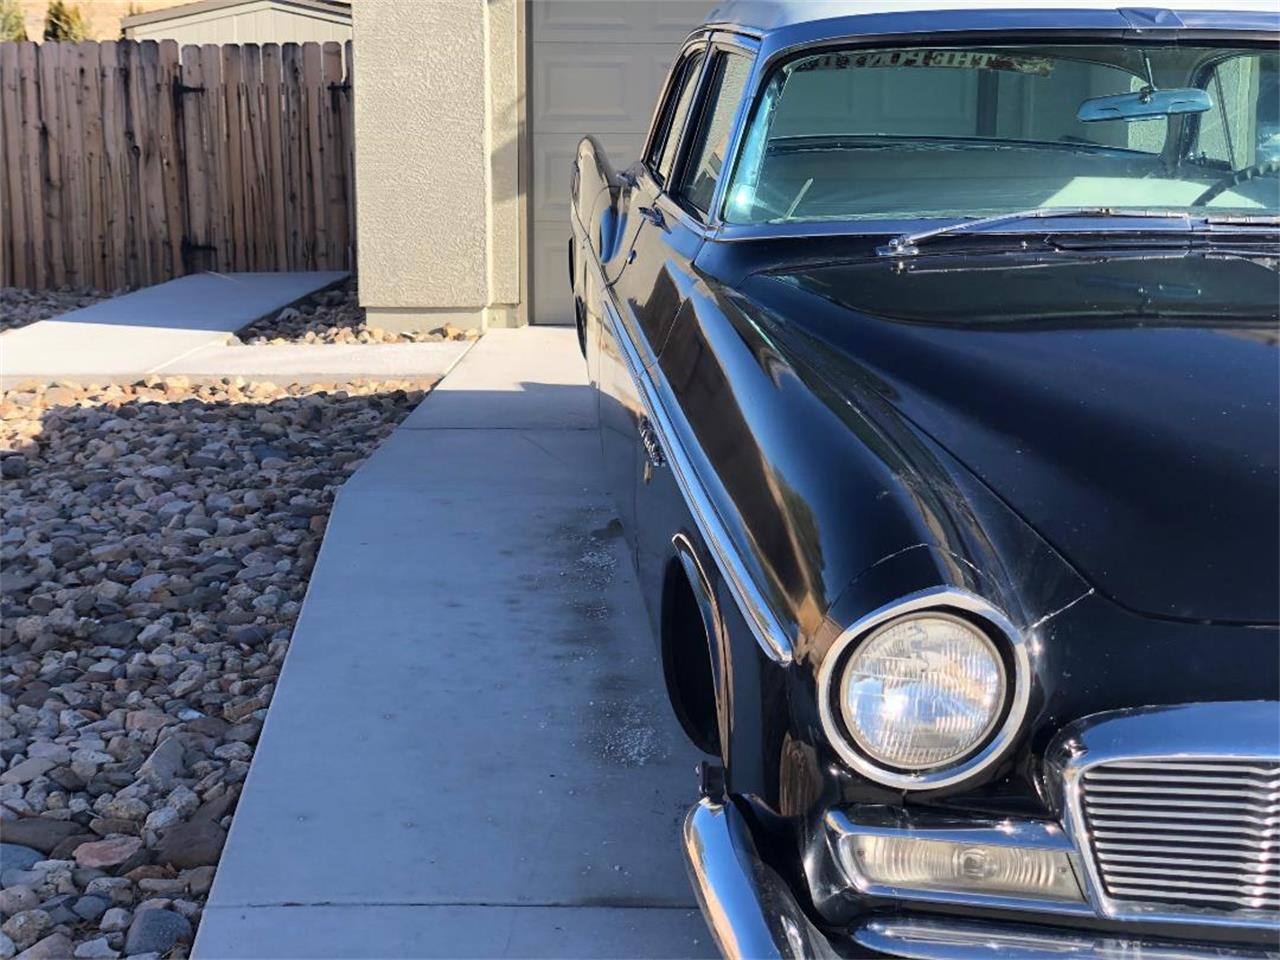 1956 Chrysler New Yorker for sale in Sparks, NV – photo 24